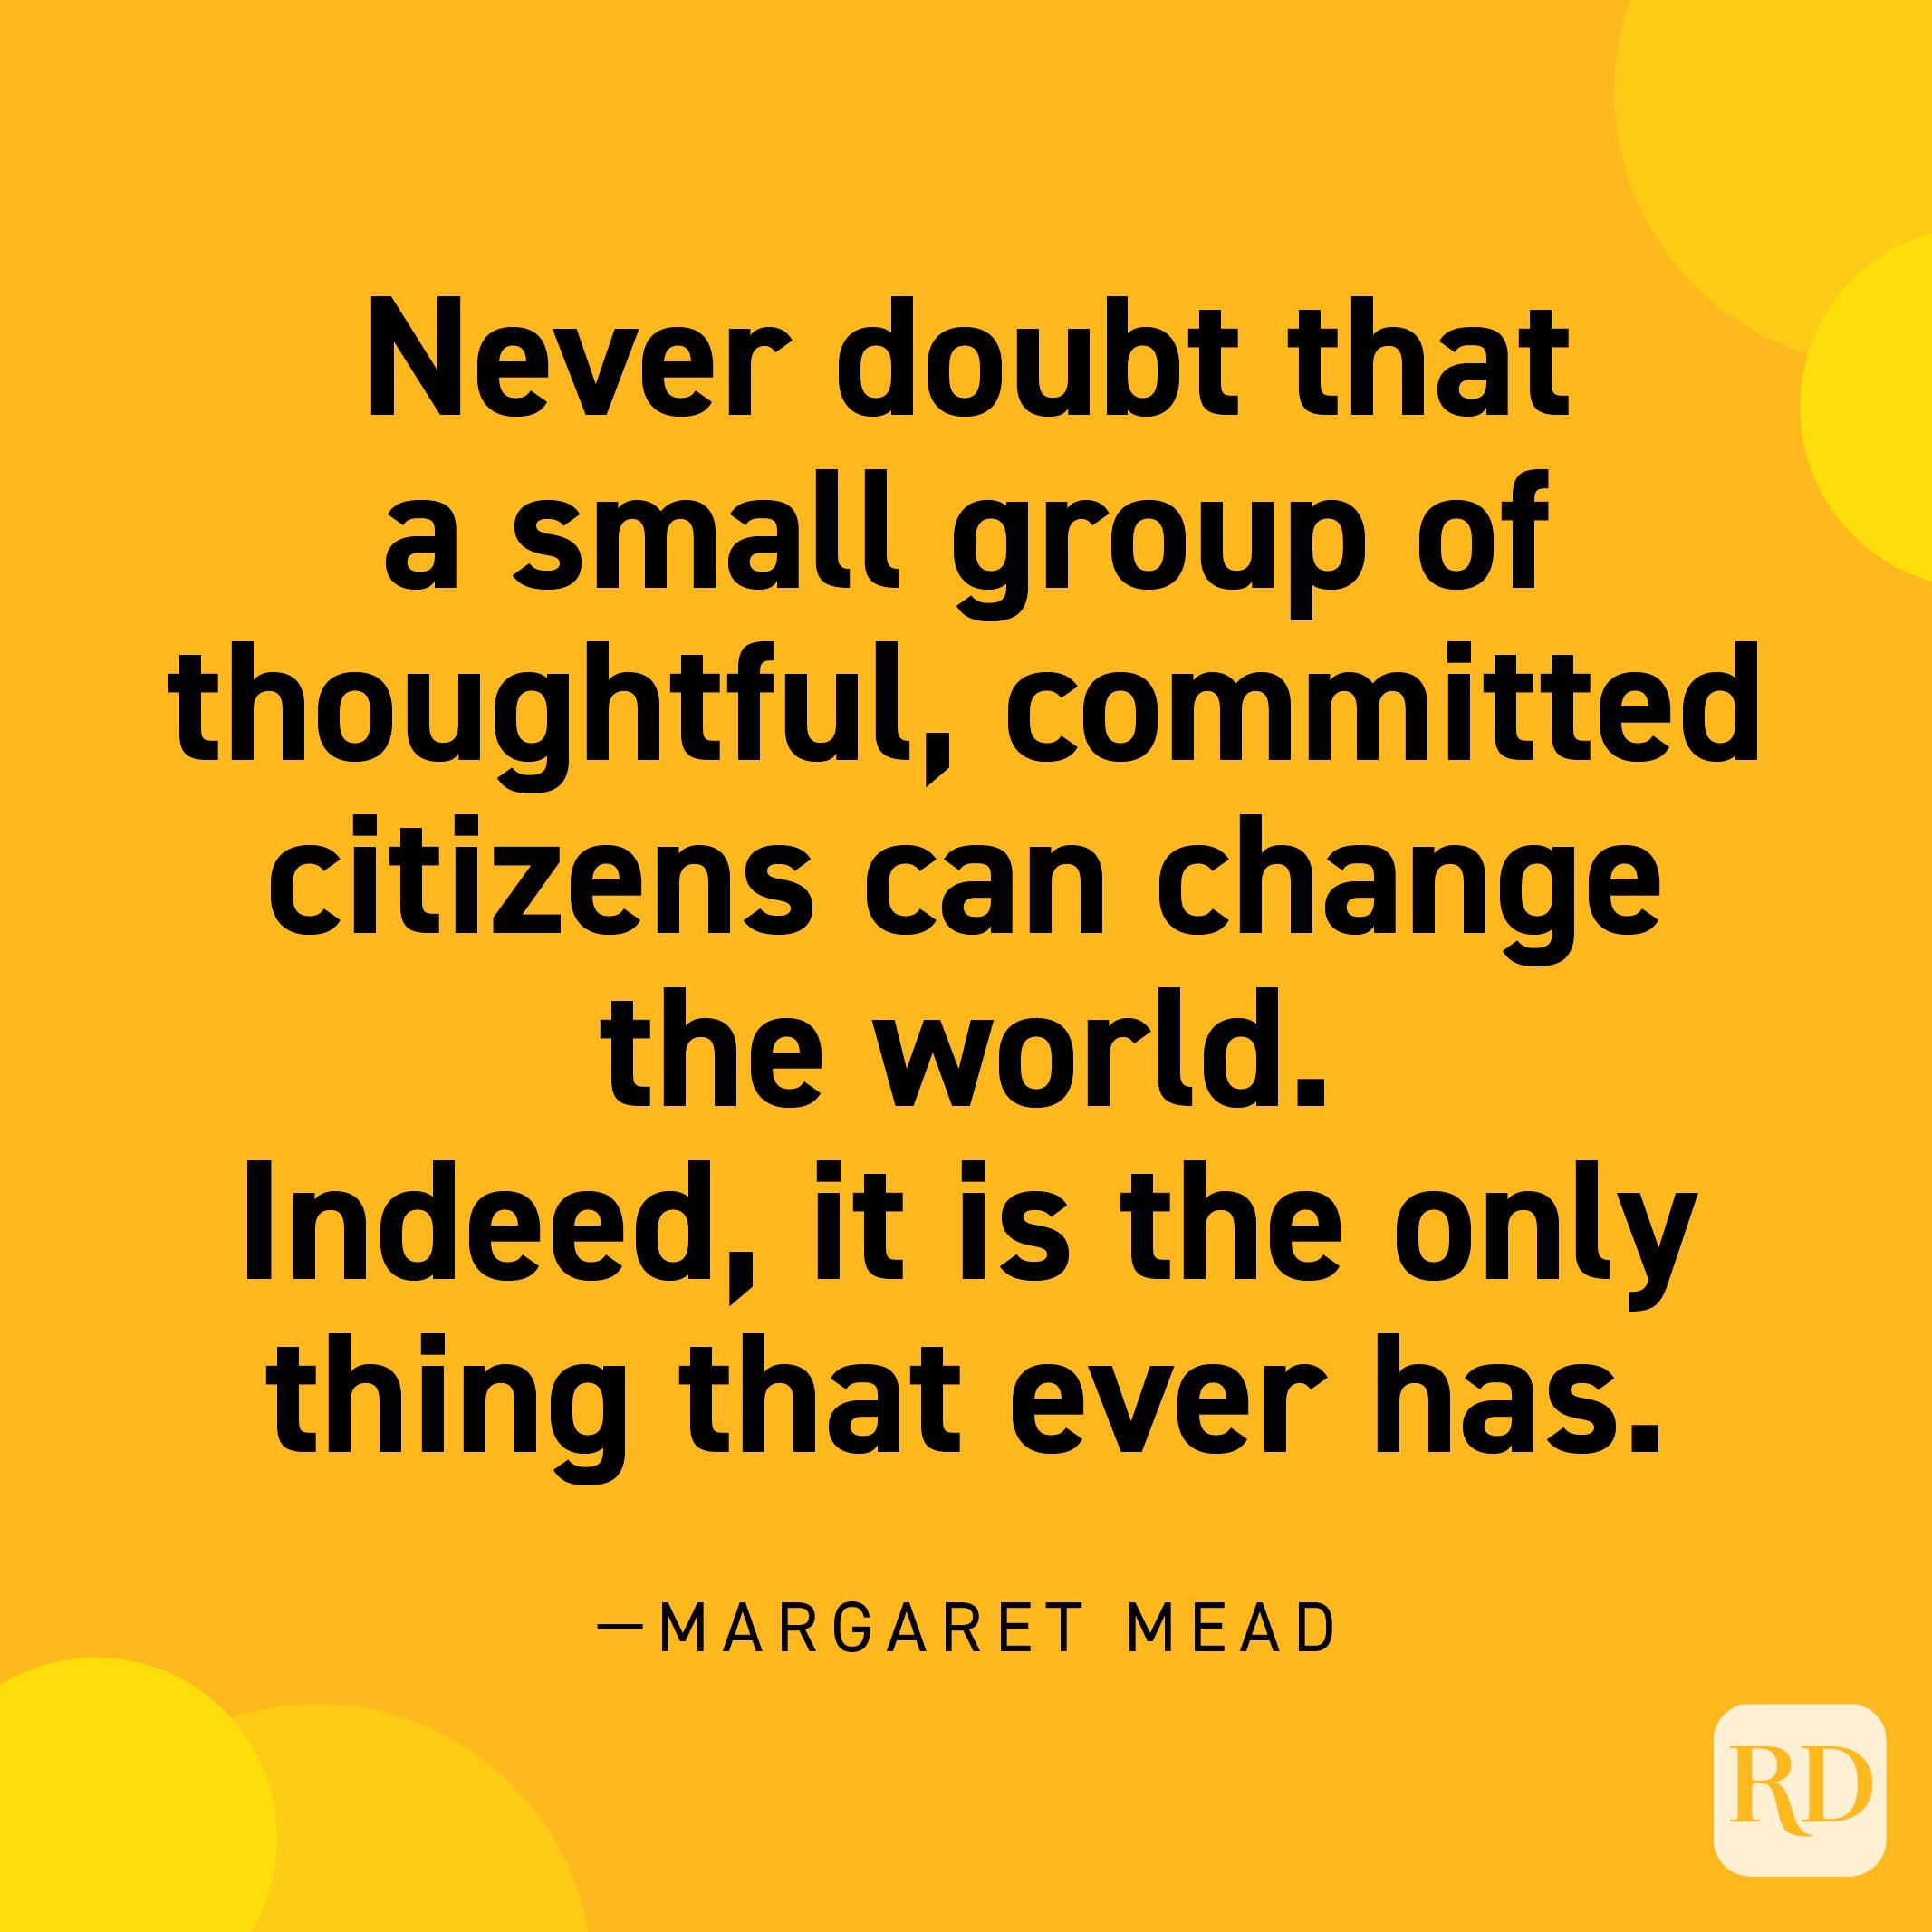 """""""Never doubt that a small group of thoughtful, committed citizens can change the world. Indeed, it is the only thing that ever has."""" —Margaret Mead."""